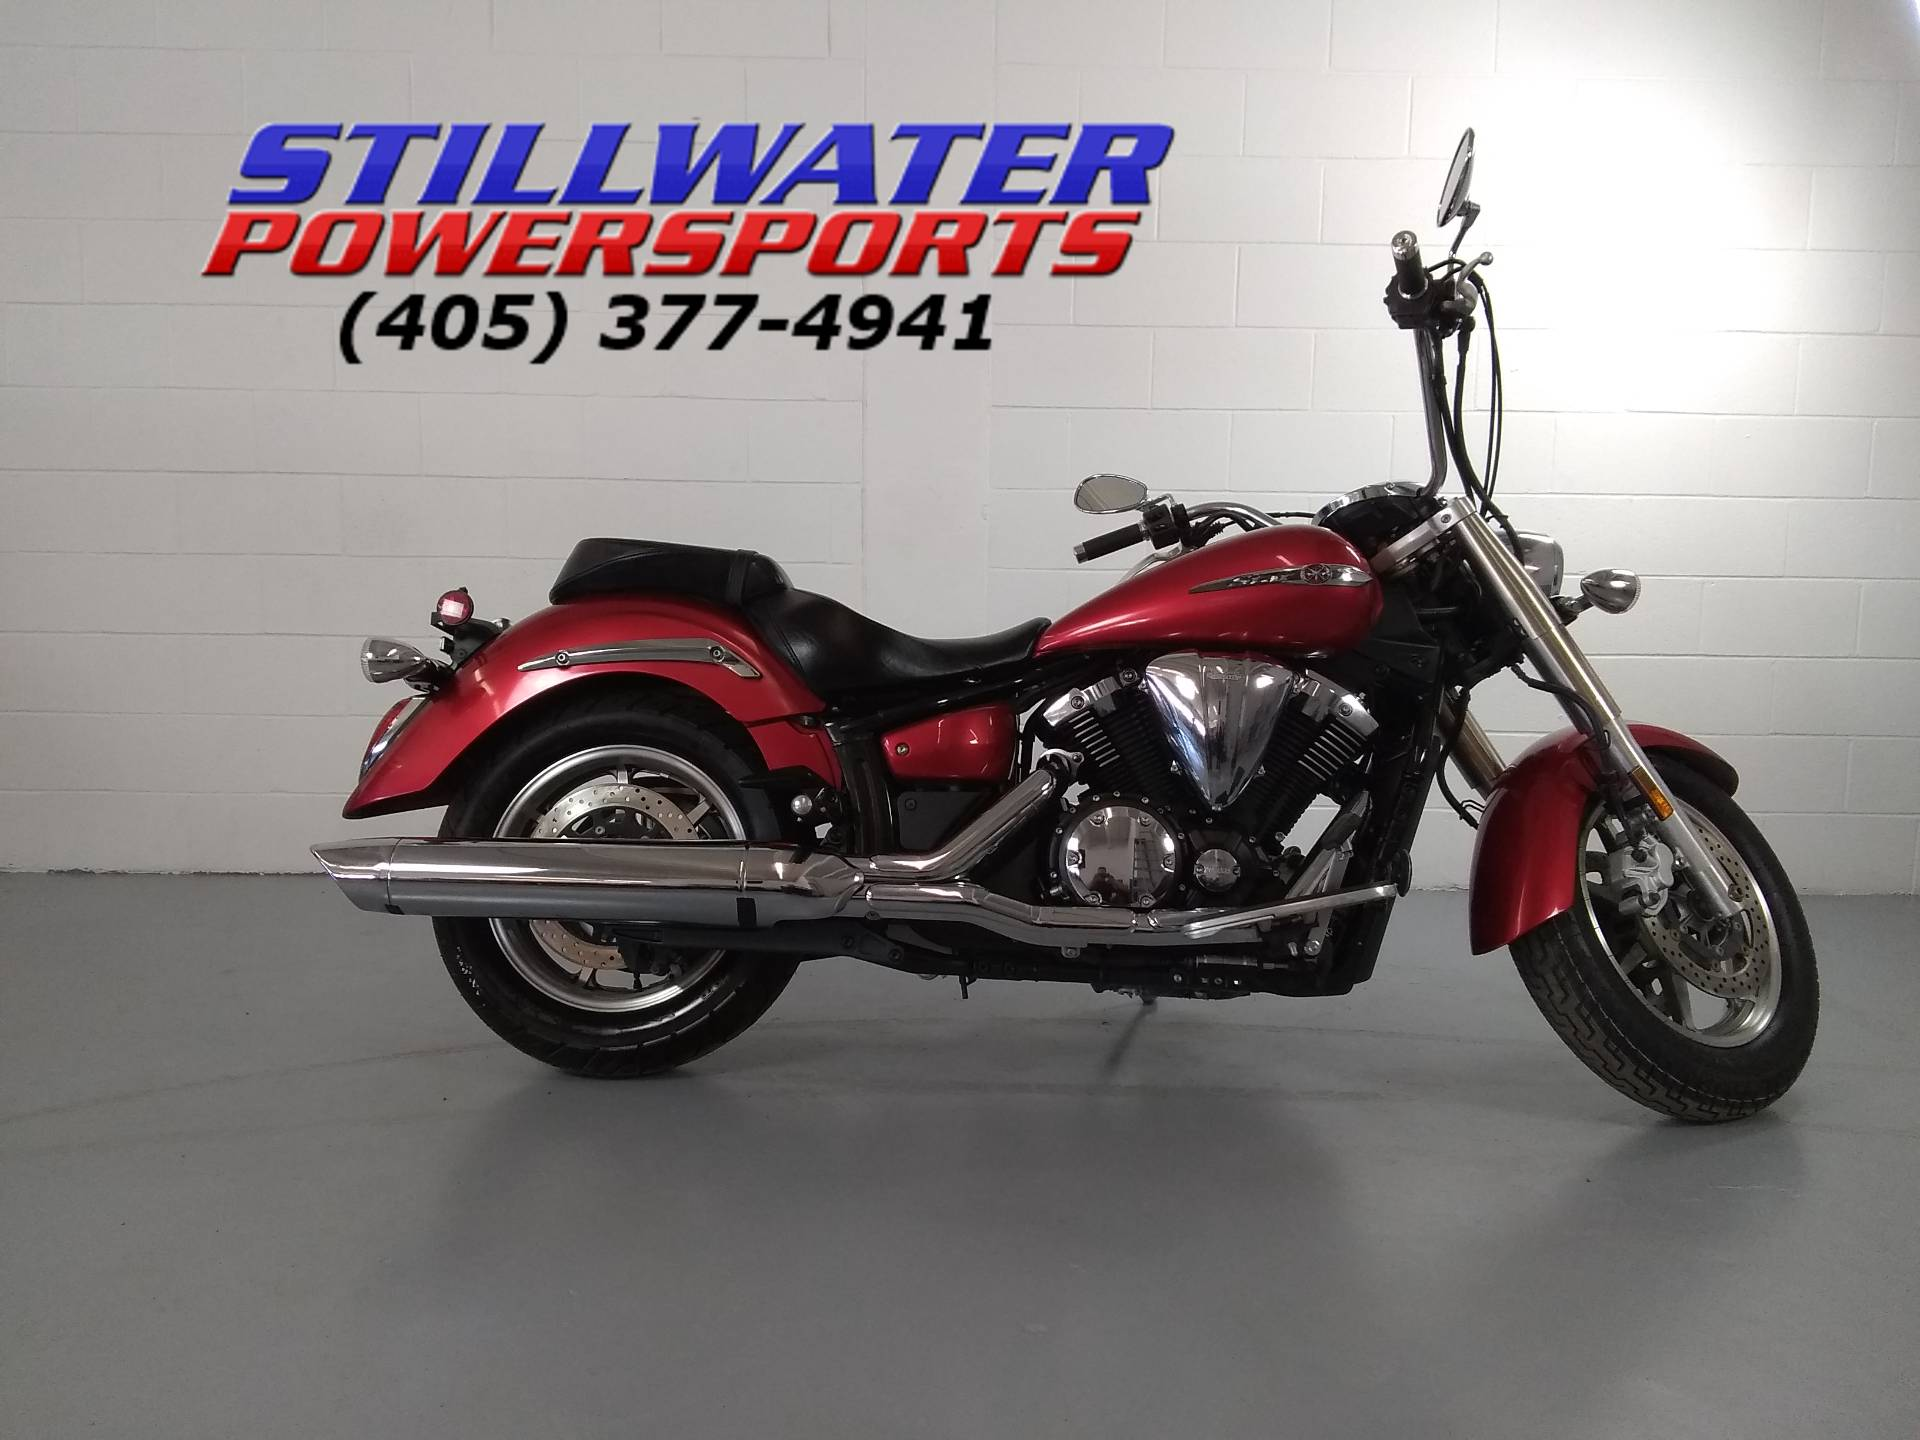 2012 Yamaha V Star 1300 in Stillwater, Oklahoma - Photo 1